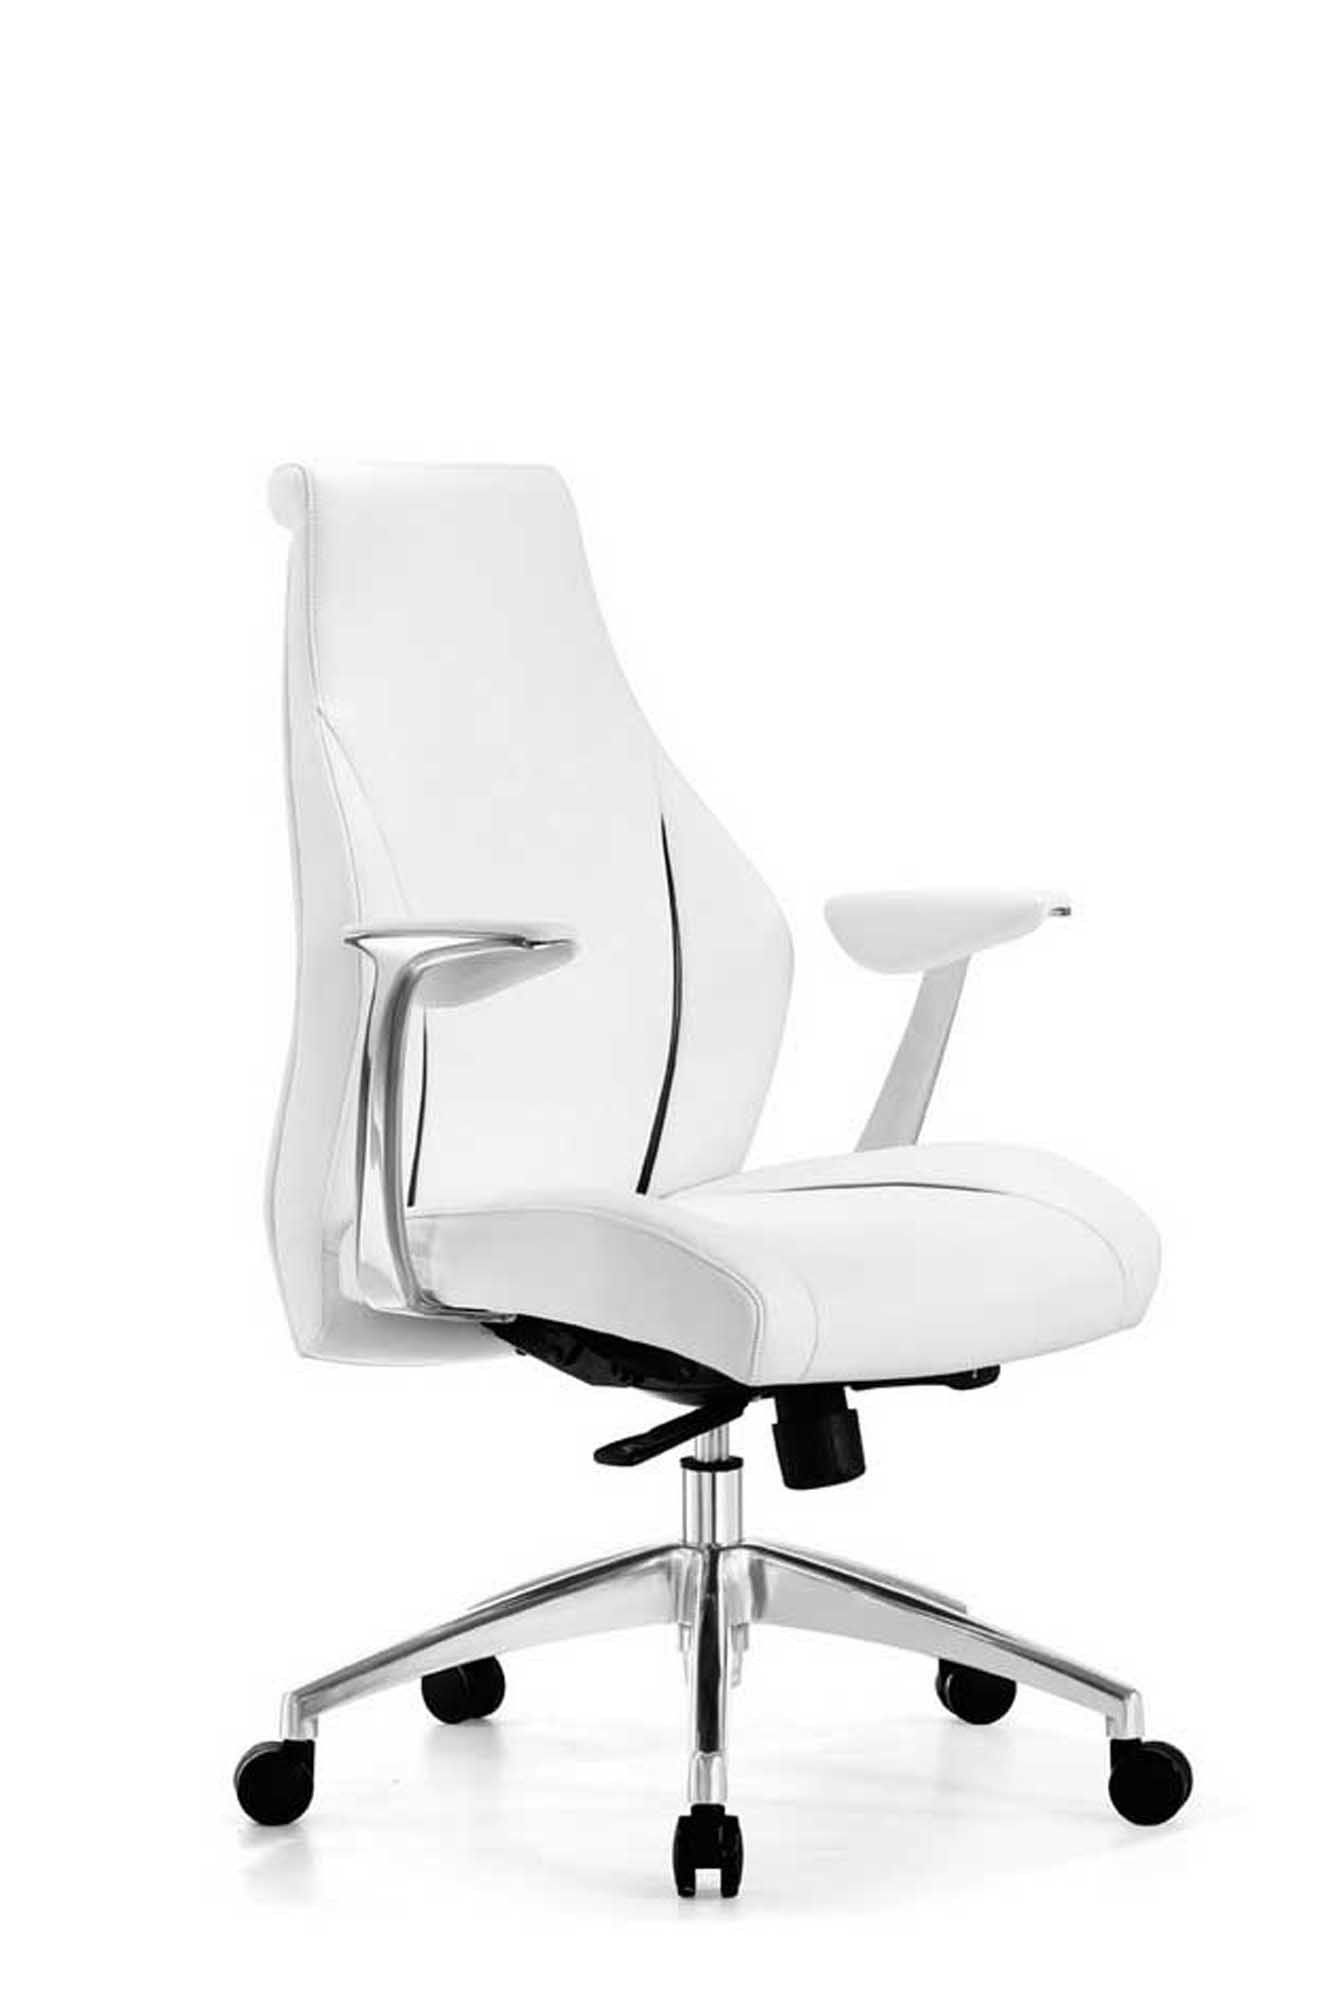 whiteline stanford low back office chair chrome steel and modern